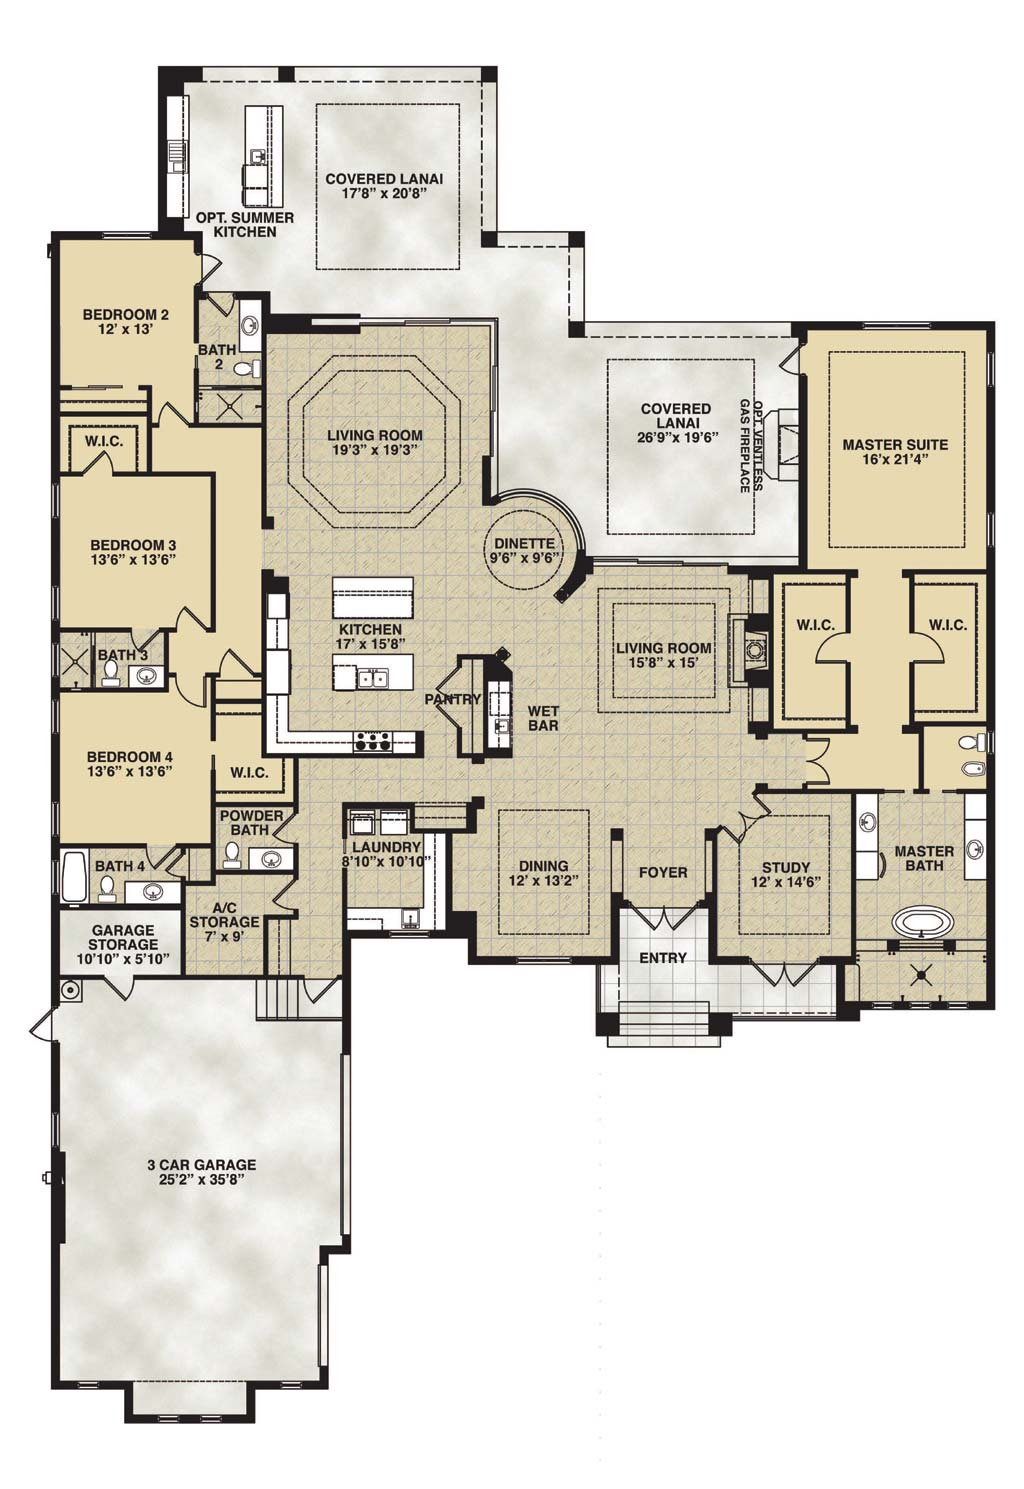 Cameron Floor Plan in Bay Woods, Stock Construction, 4 Bedroom, 4.5 Bath, Living Room, Family Room, Dining Room, Dinette, Study, Outdoor Living, 3-car Garage